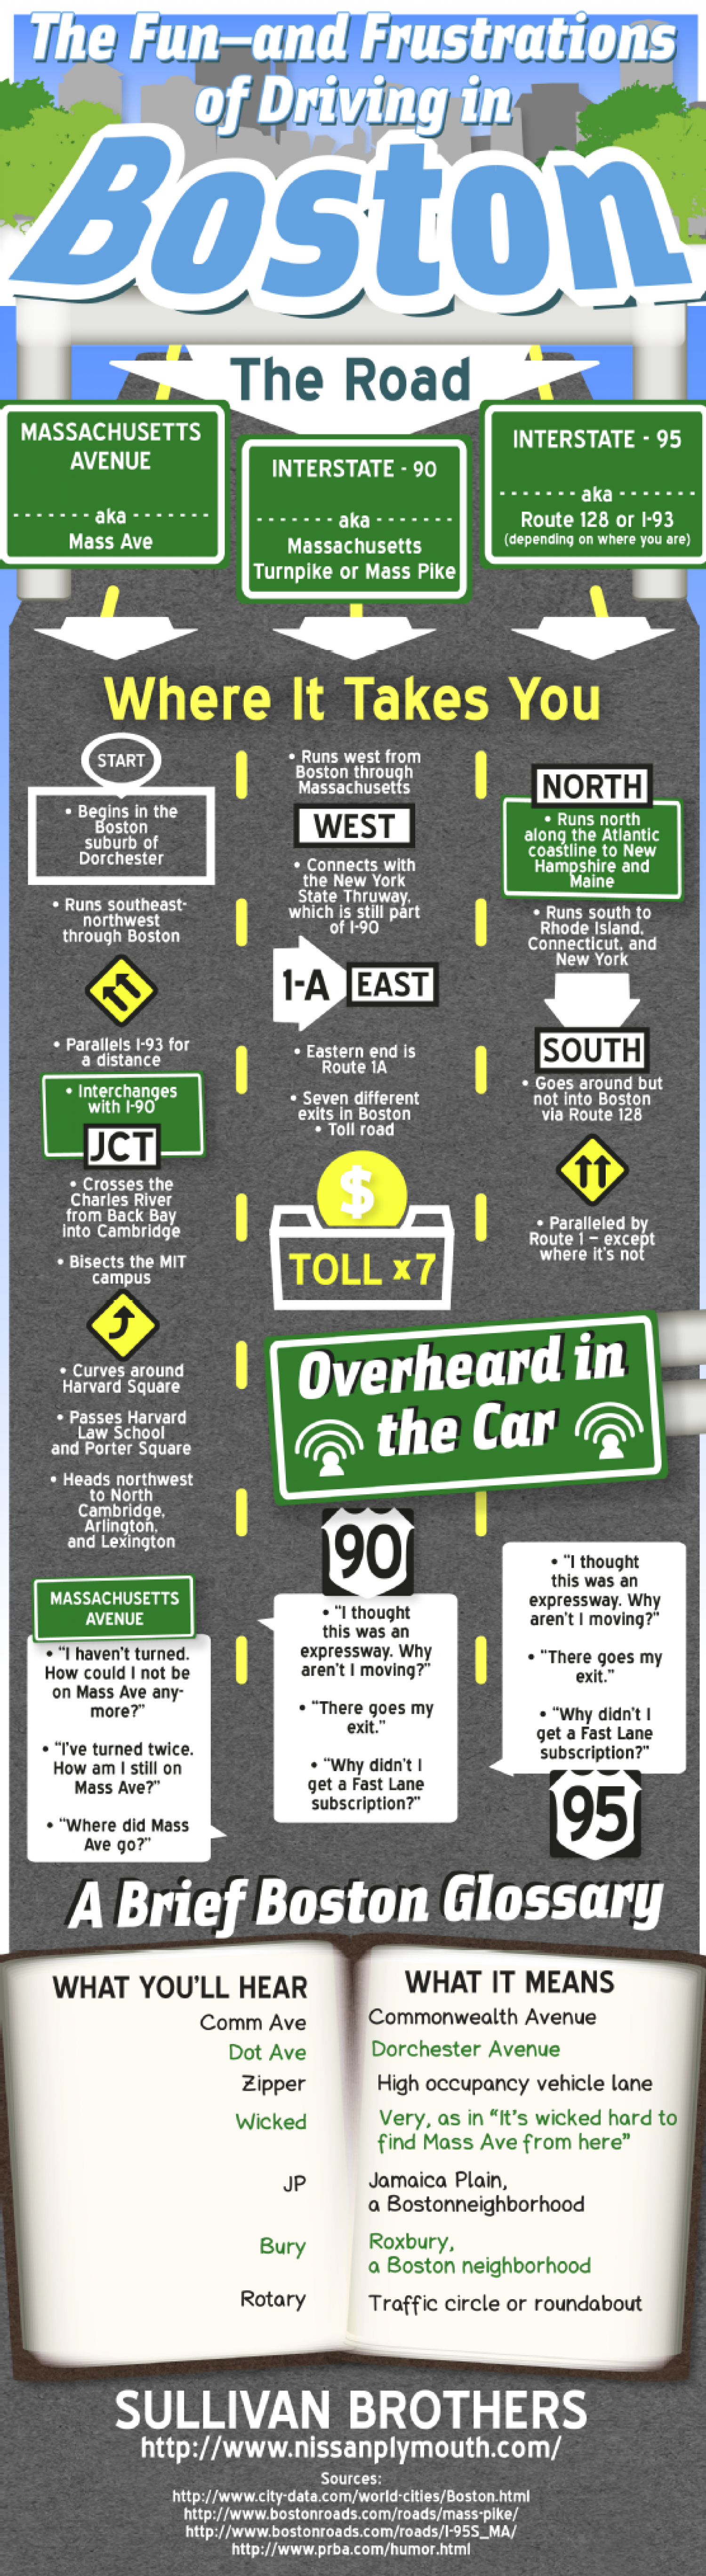 The Fun—and Frustrations—of Driving in Boston  Infographic